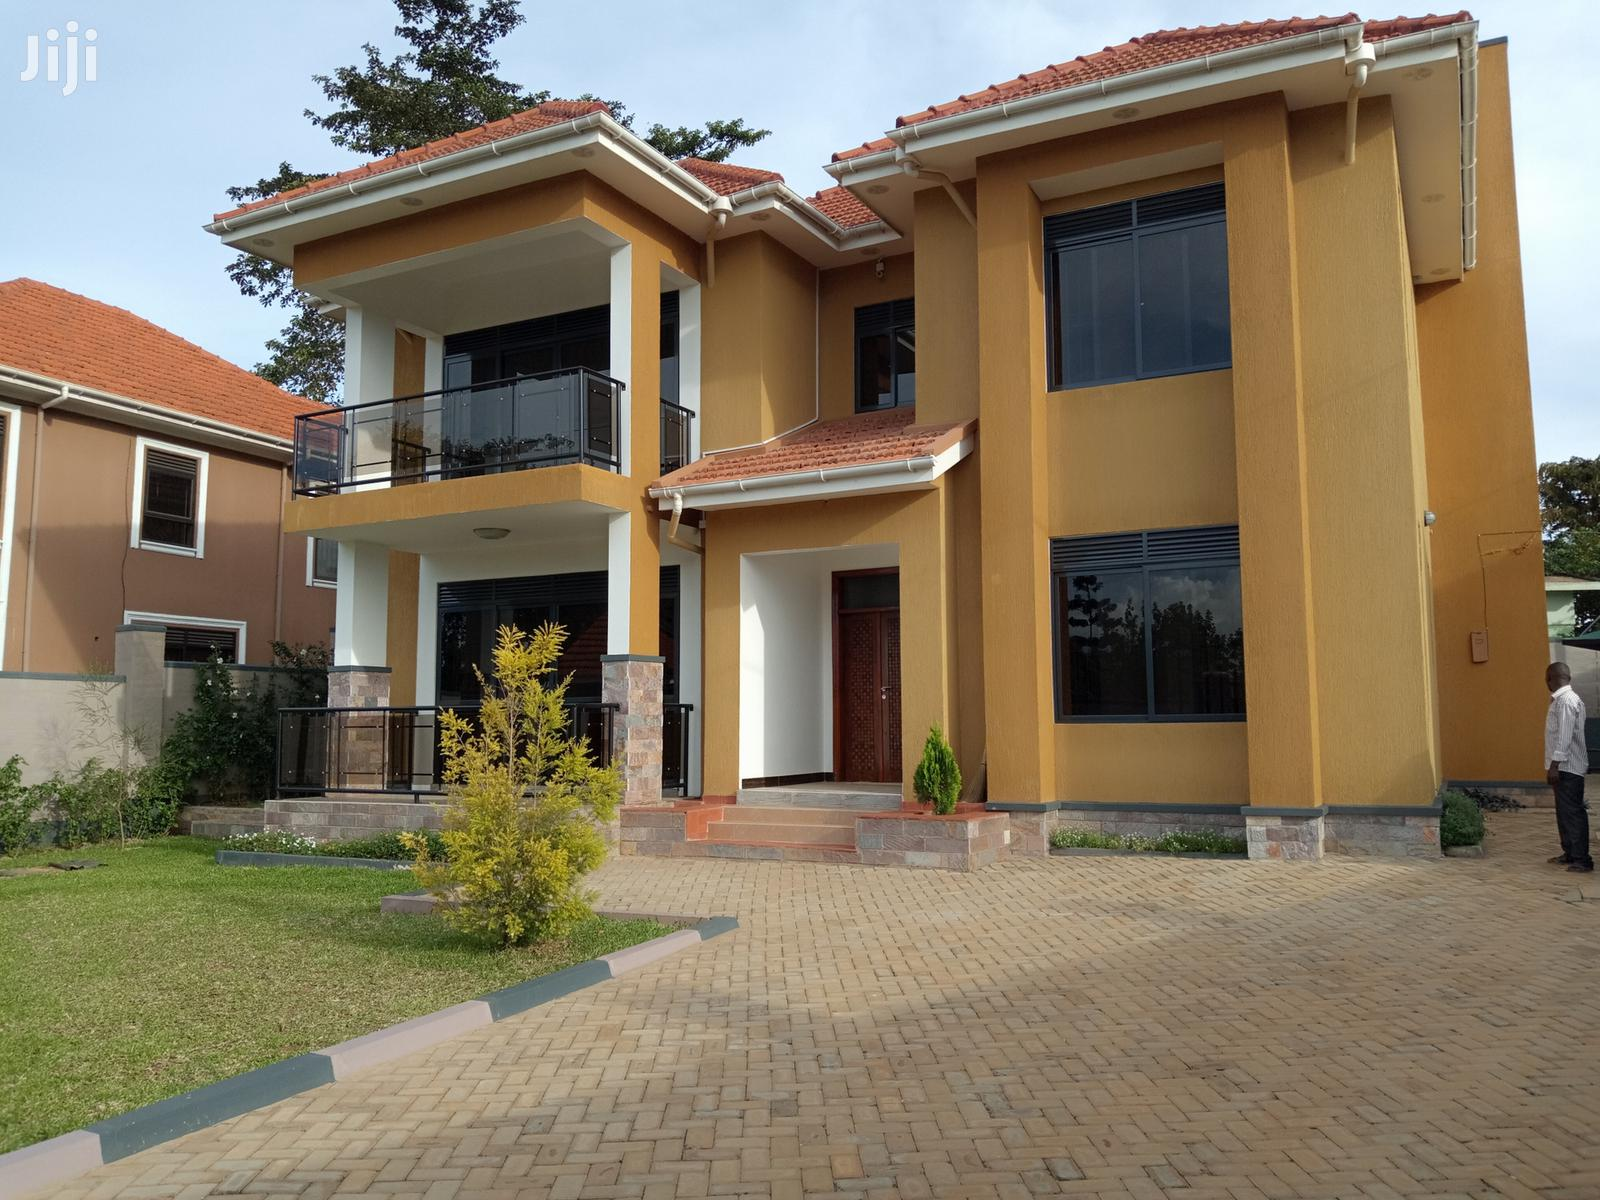 Bunga Classy Mansion on Sell | Houses & Apartments For Sale for sale in Kampala, Central Region, Uganda